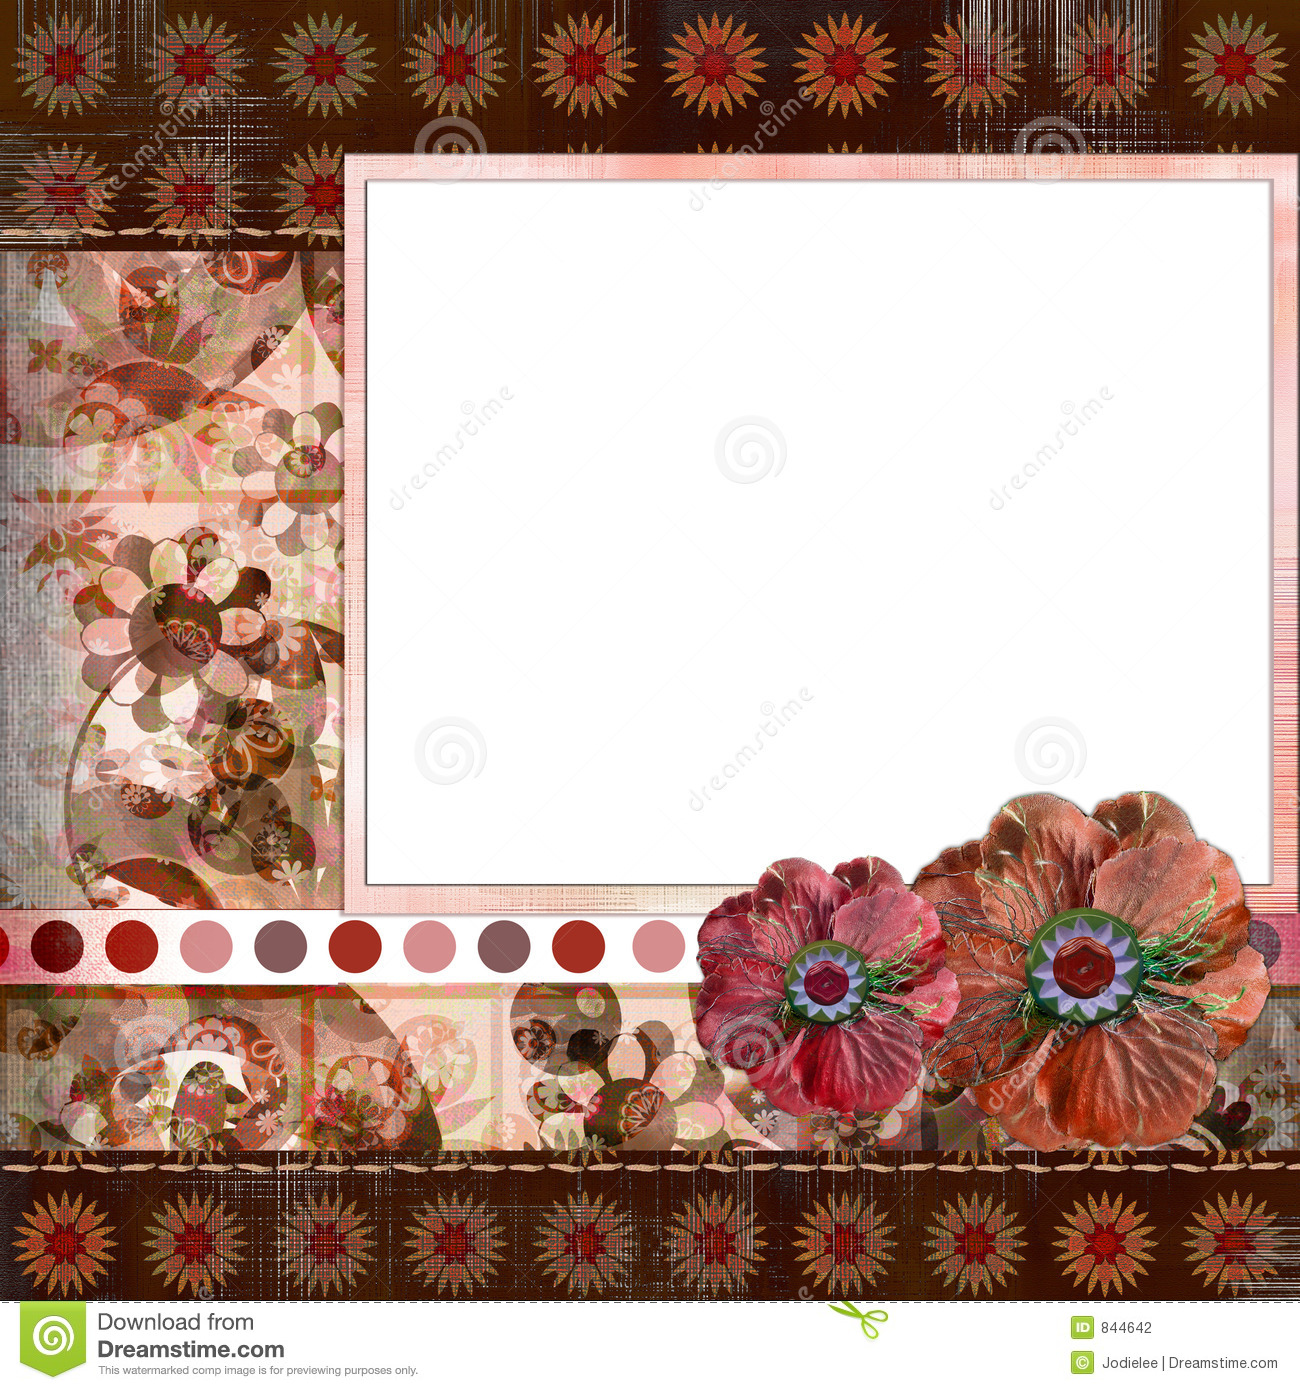 How to scrapbook 8x8 layouts - Bohemian Gypsy Style Scrapbook Album Page Layout 8x8 Inches